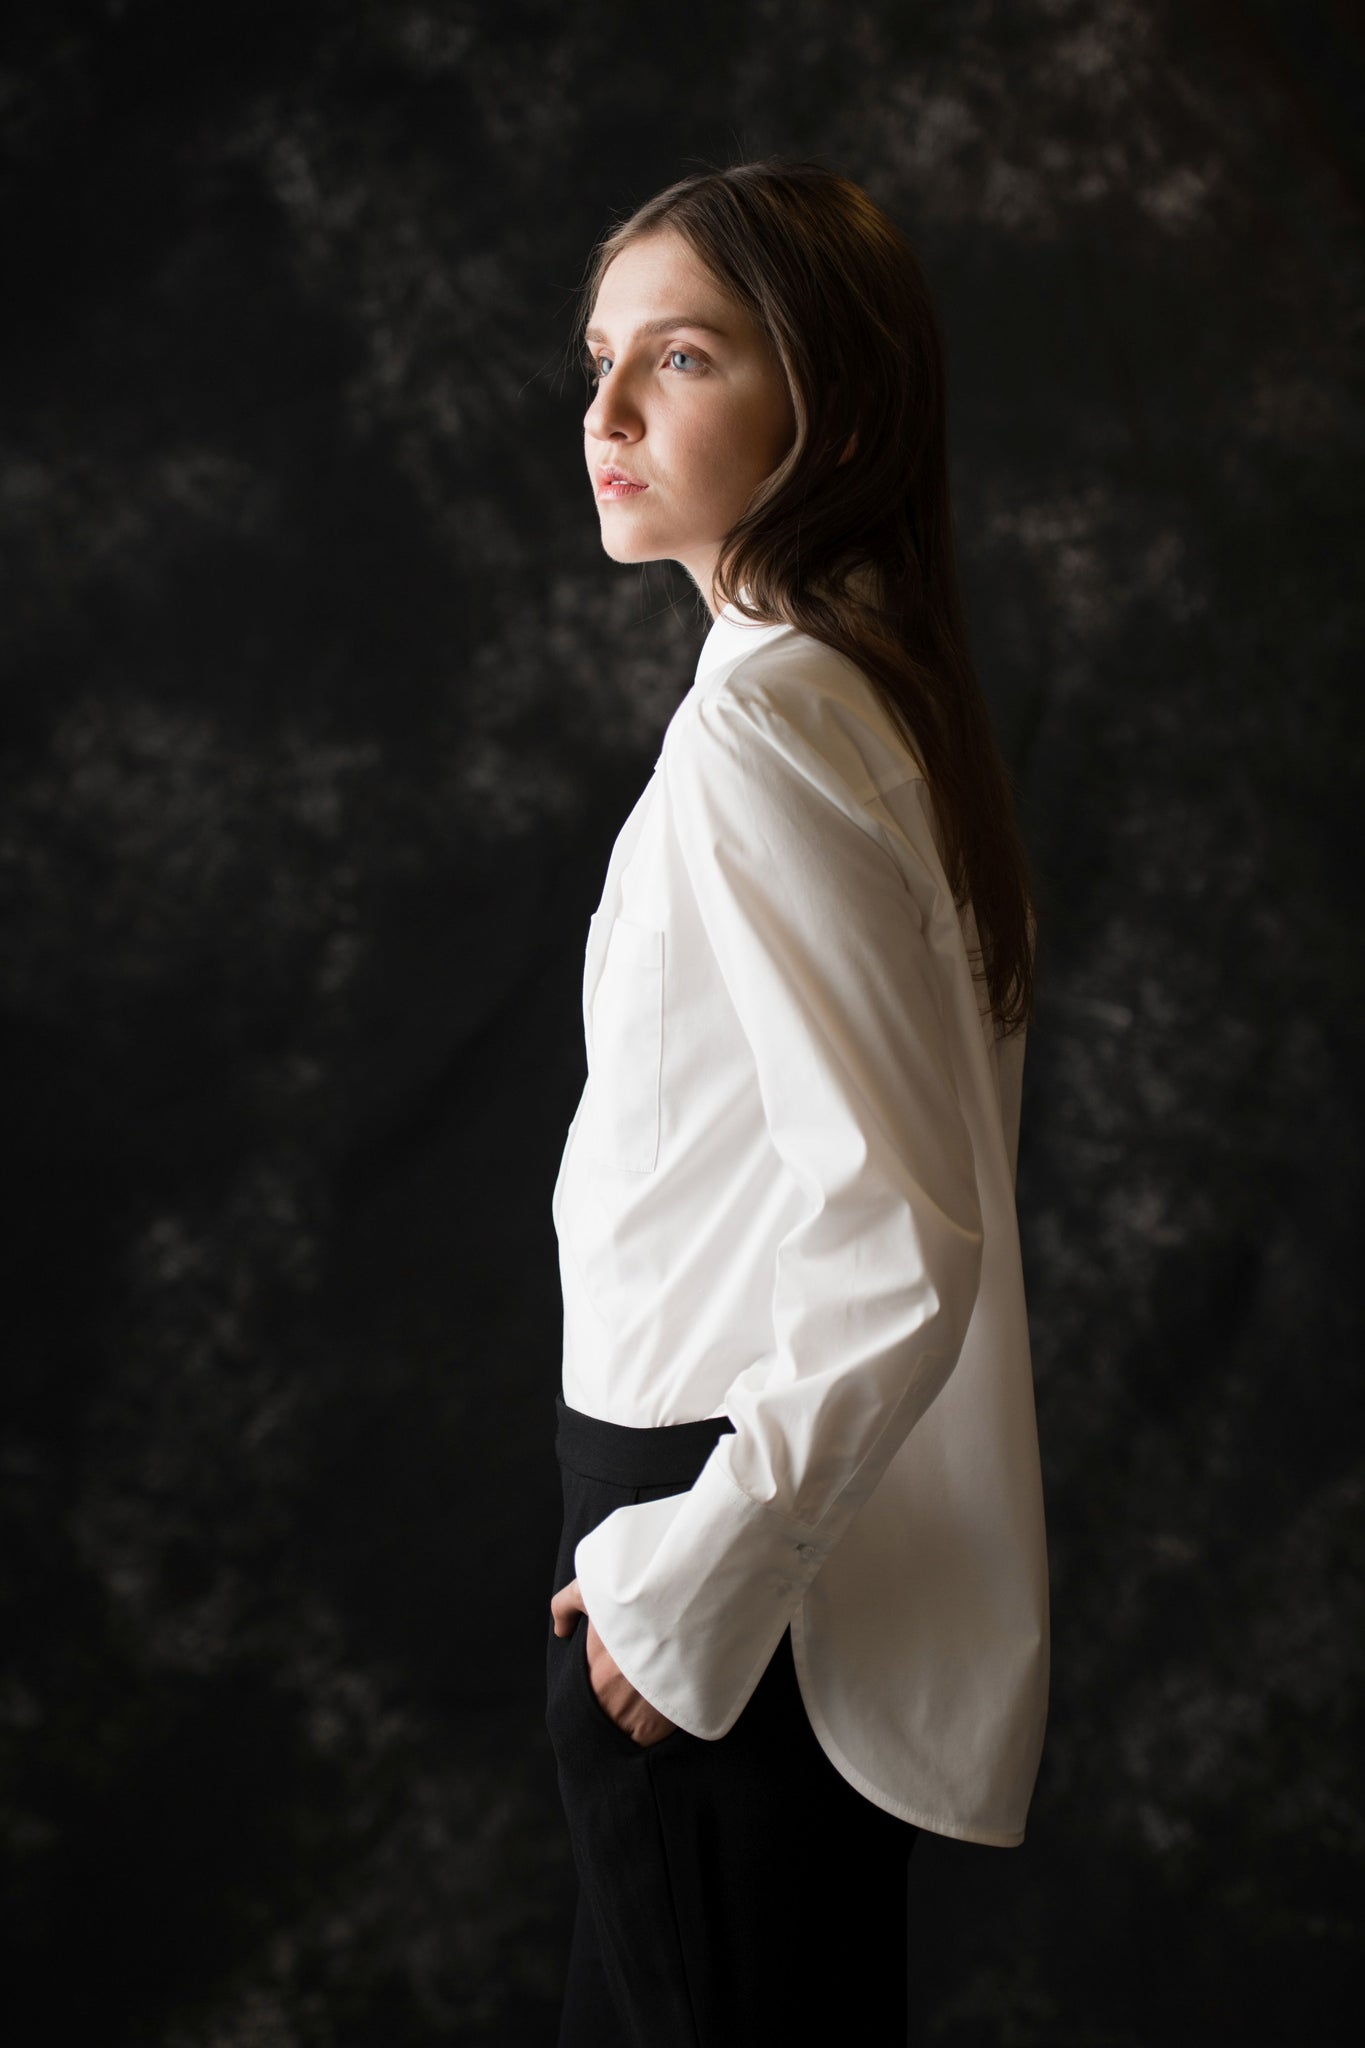 Essex Button Down women's white blouse - Less than none Greater than